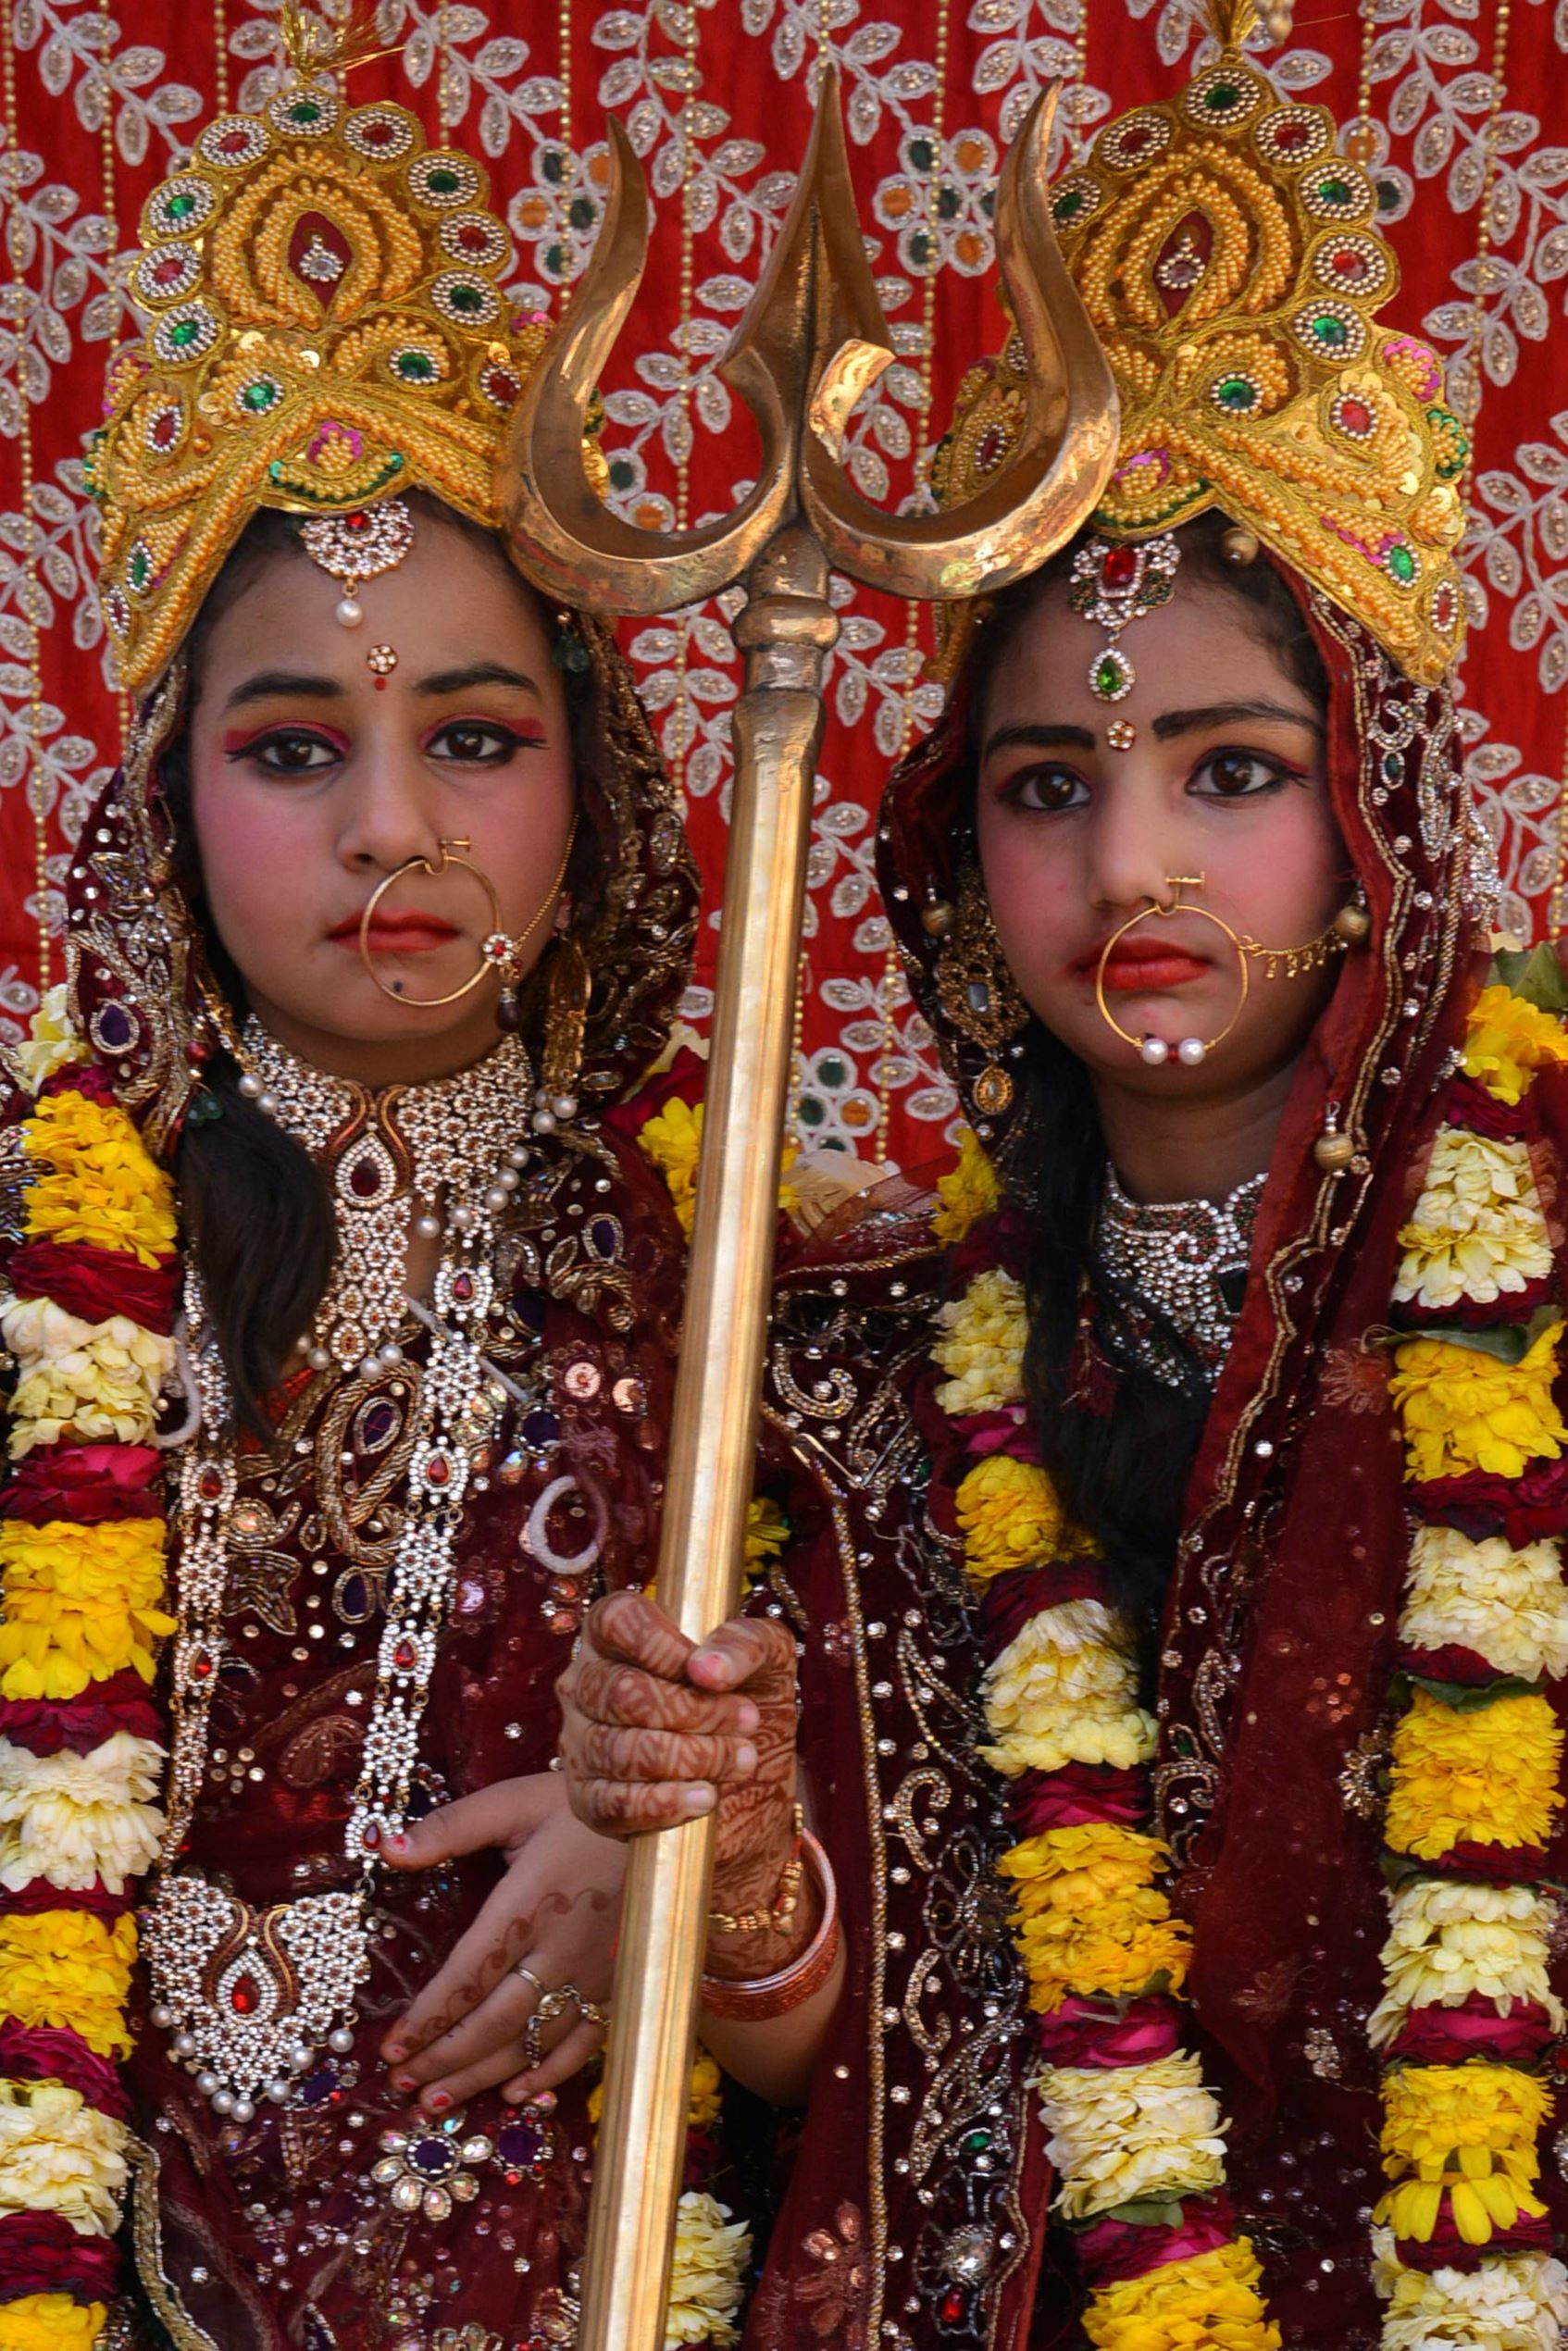 Two Indian girls, both dressed as deity Durga Mata, participate in a Hindu religious procession on the occasion of the Ram Navmi Festival, Amritsar, India. Navmi commemorates the birth of Hindu deity Rama.